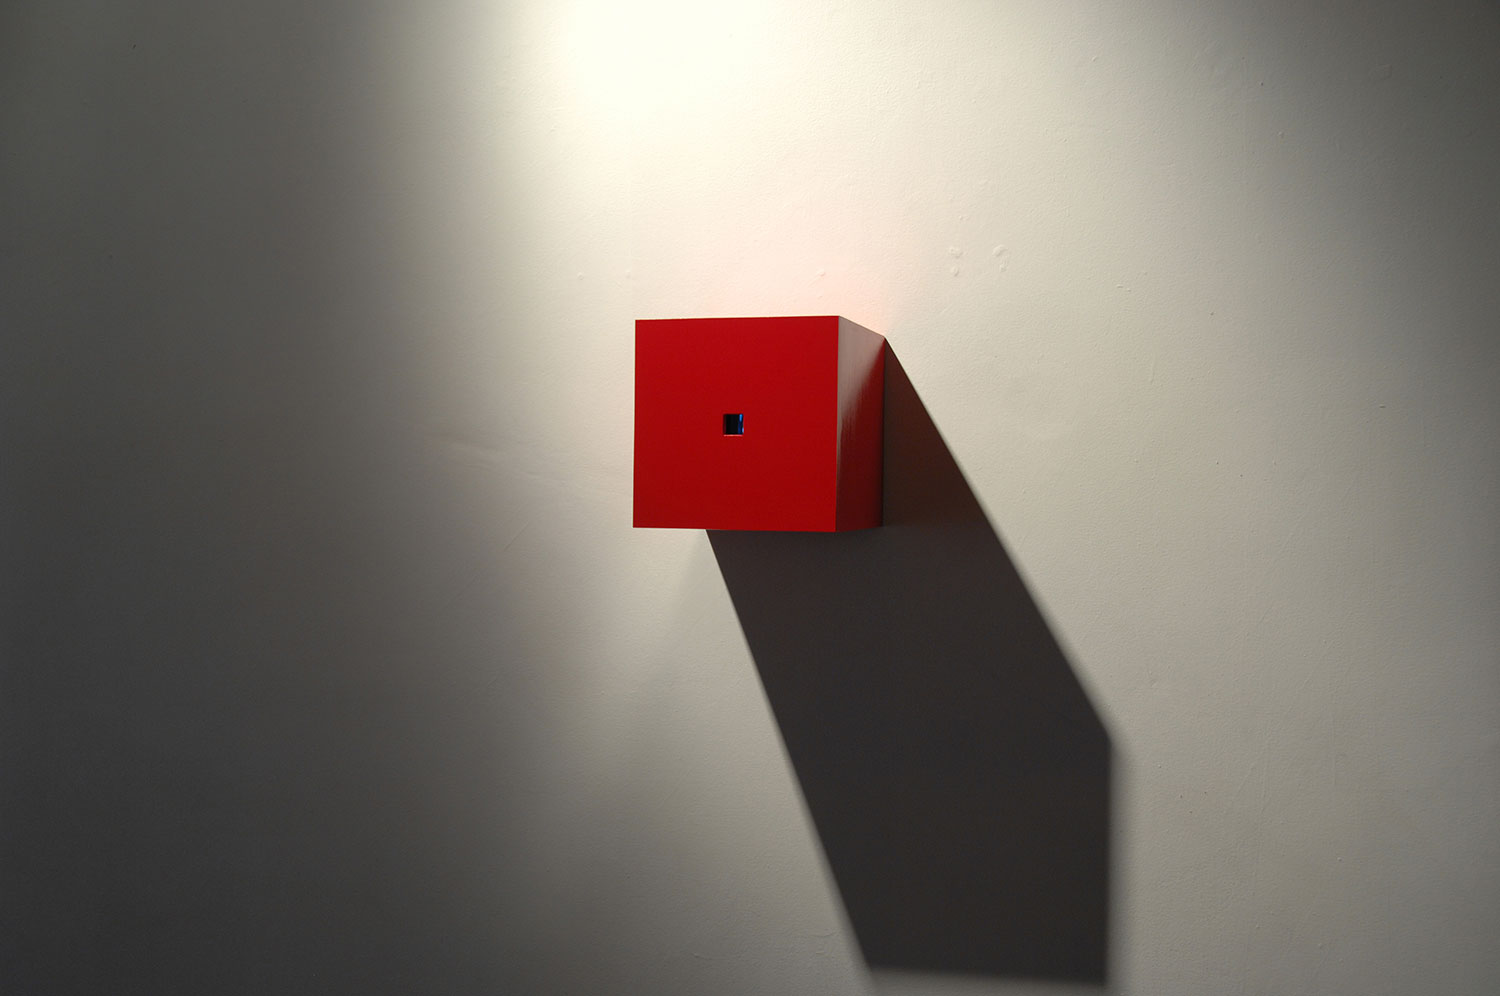 Existential Dilemma, 2003, video installation, two-channel, red box 11 x 11 x 11.5<br><br>Go to menu, click VIDEOS, to watch excerpts<br><br>Peek inside the box to find us continuously flipping inside a box that imposes laws of constraint.